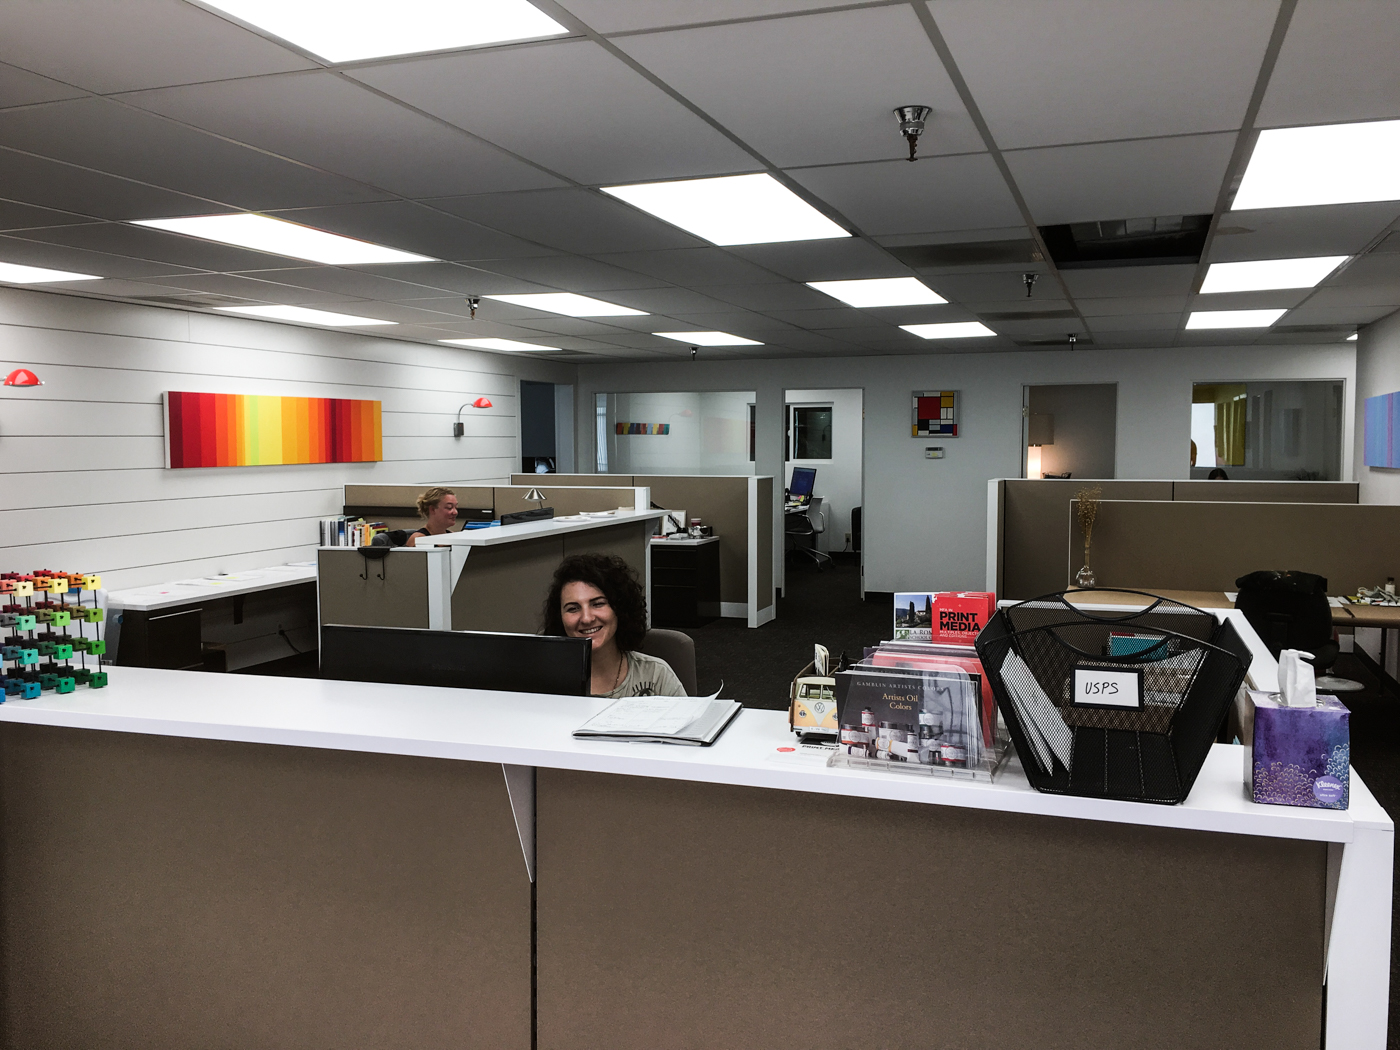 Lauren And Kaitlin Say Hey From Their New Desks